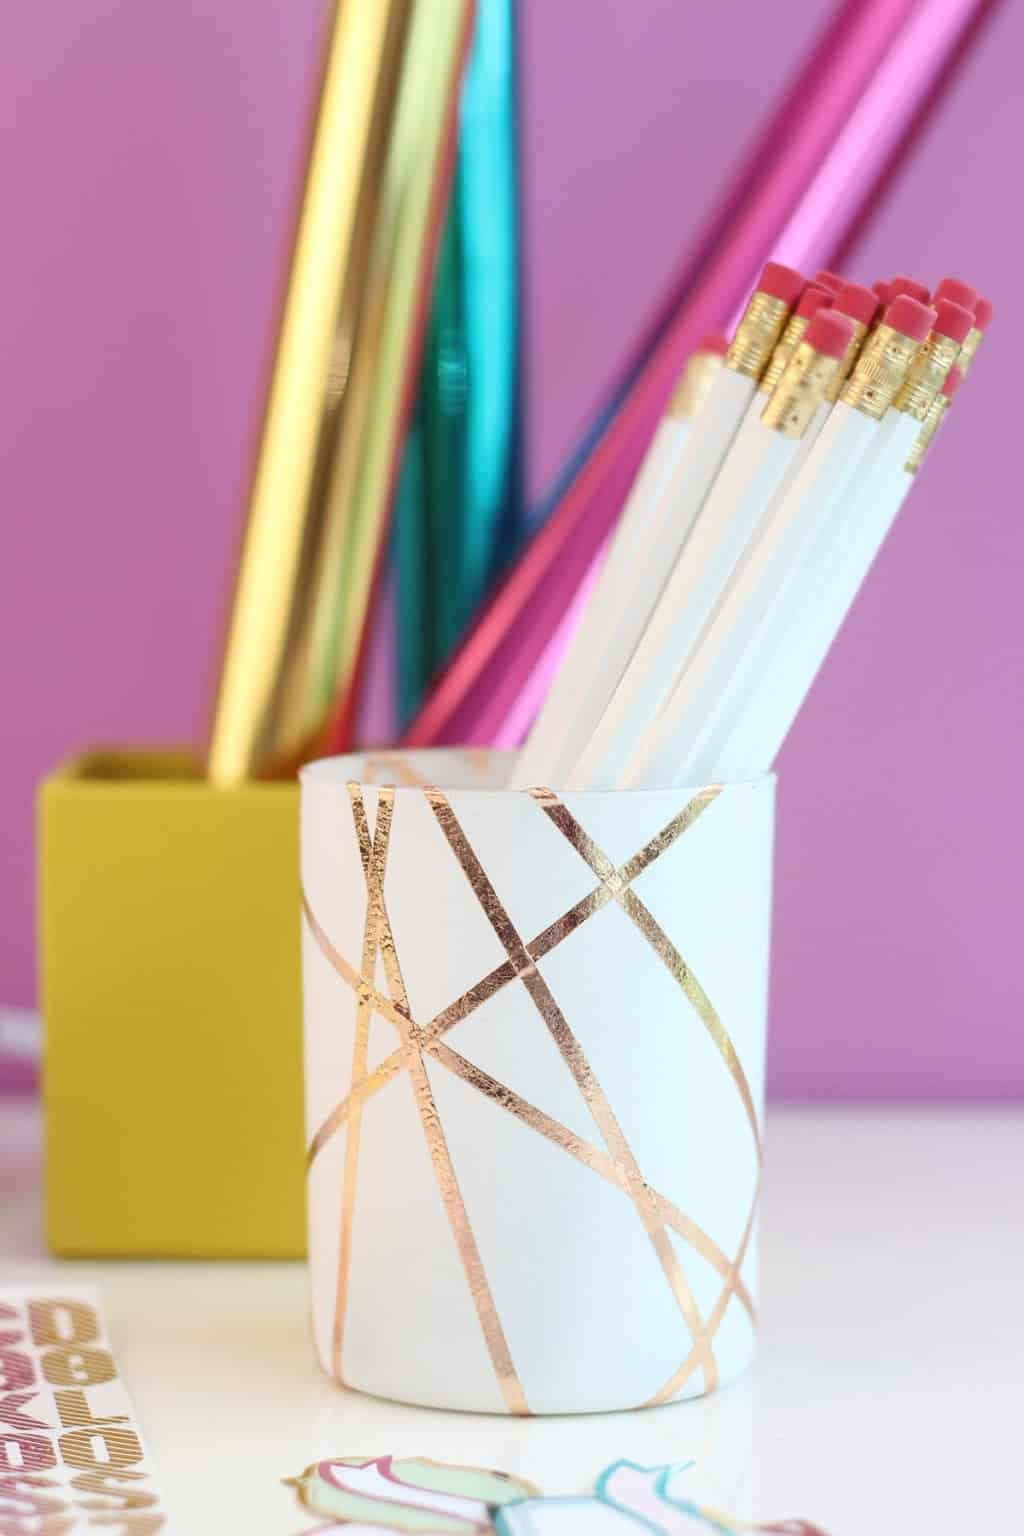 Rose gold foiled pencil holder